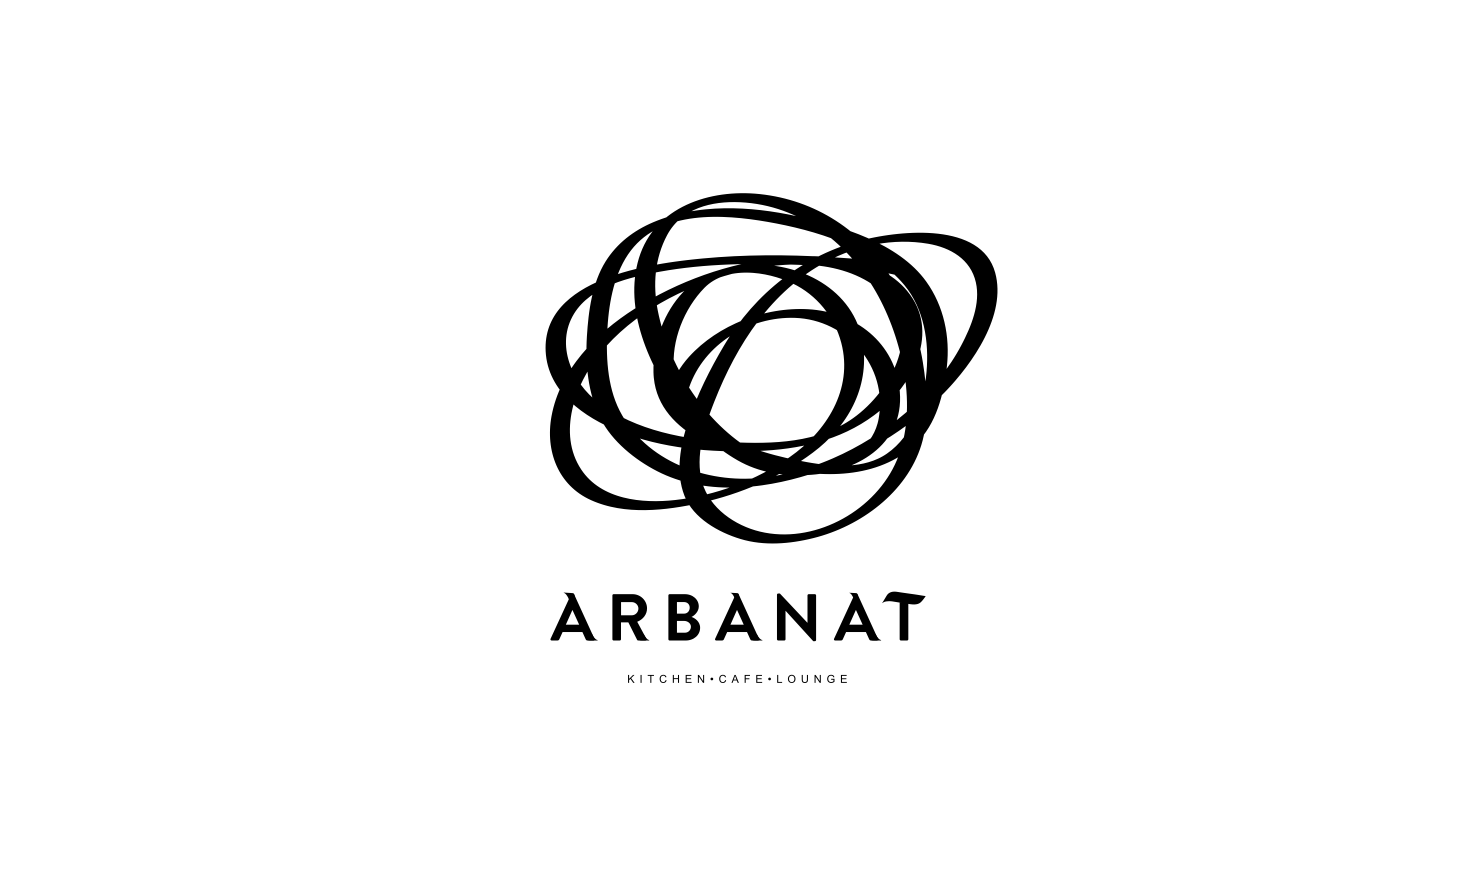 The Arbanat Kitchen.Cafe.Lounge